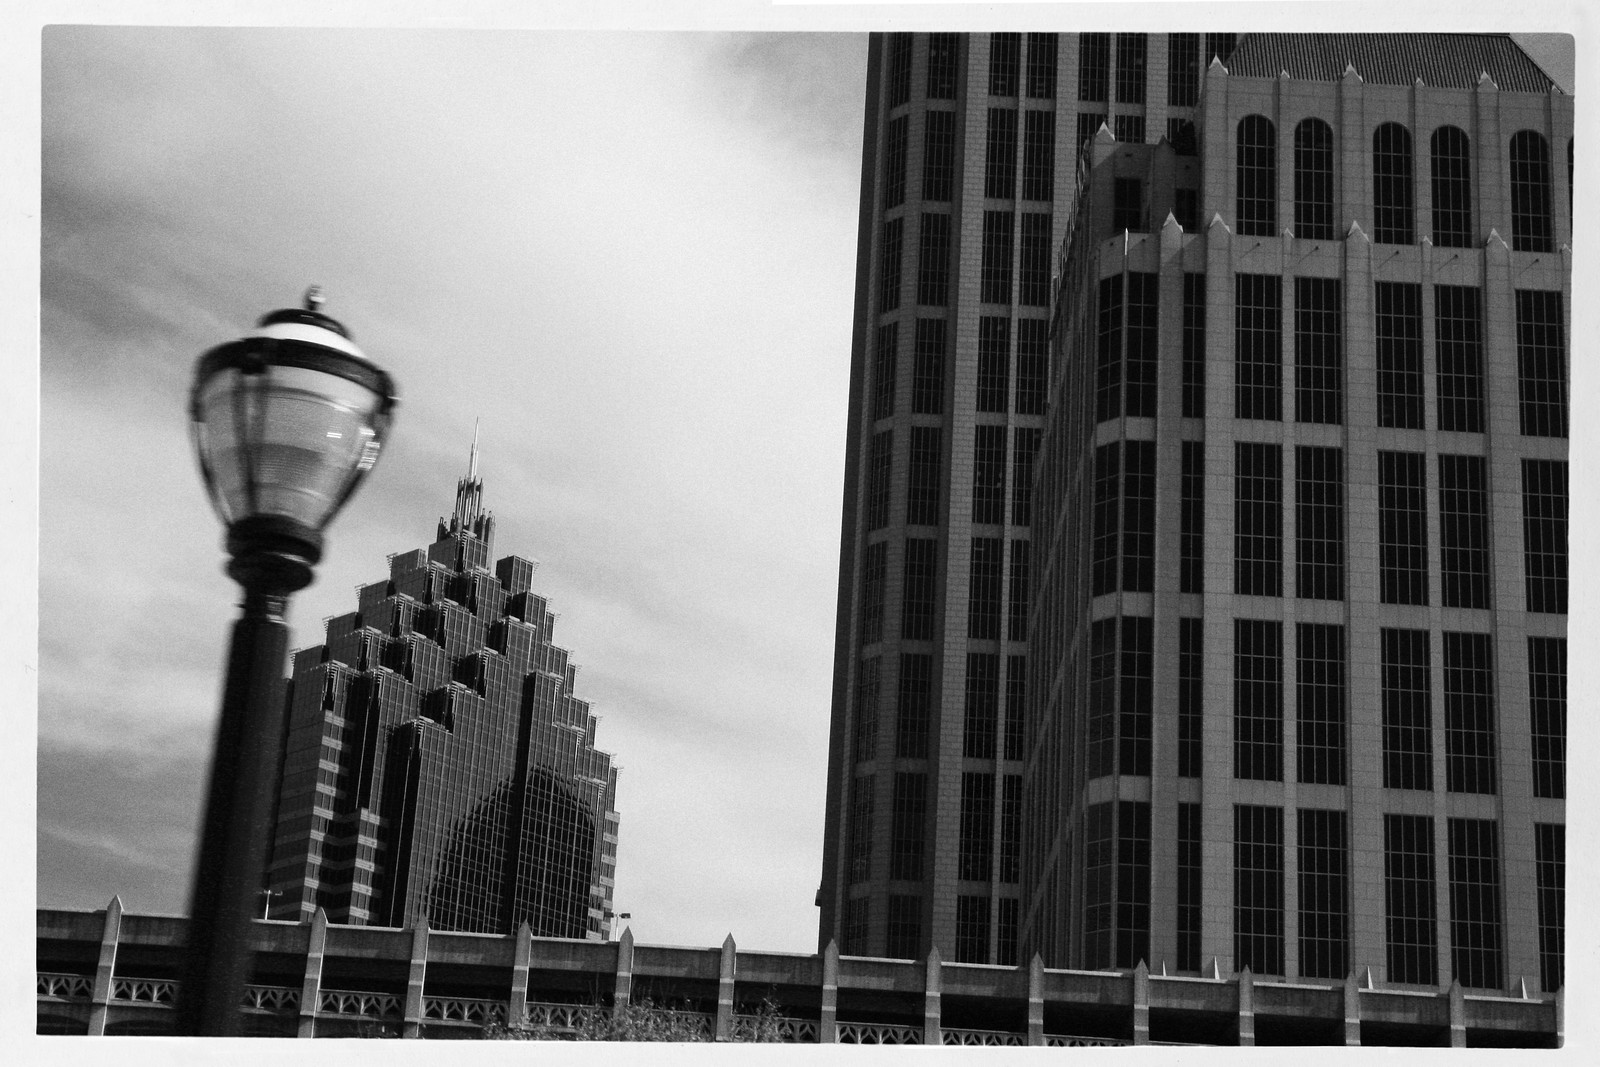 Midtown Atlanta with Lamp, 2013